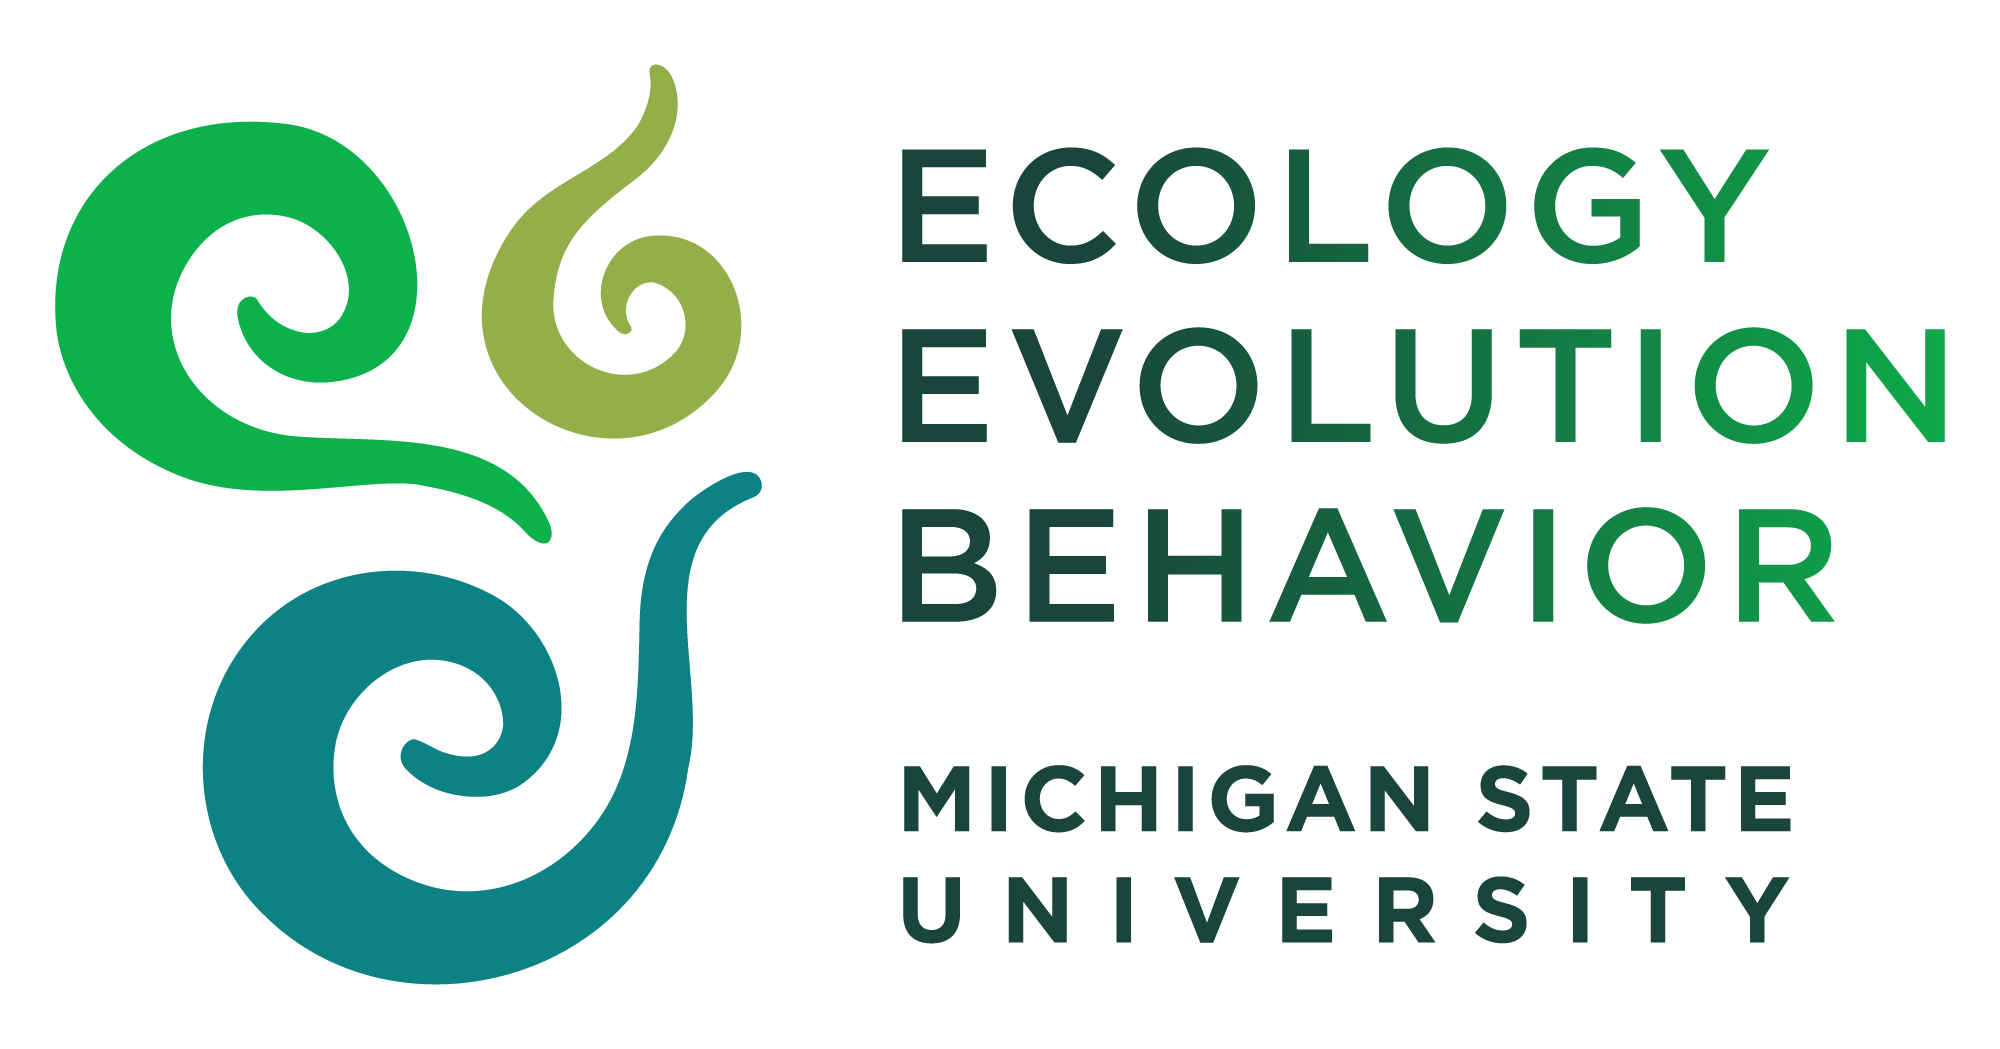 Michigan State University Ecology, Evolution, and Behavior Program graphic